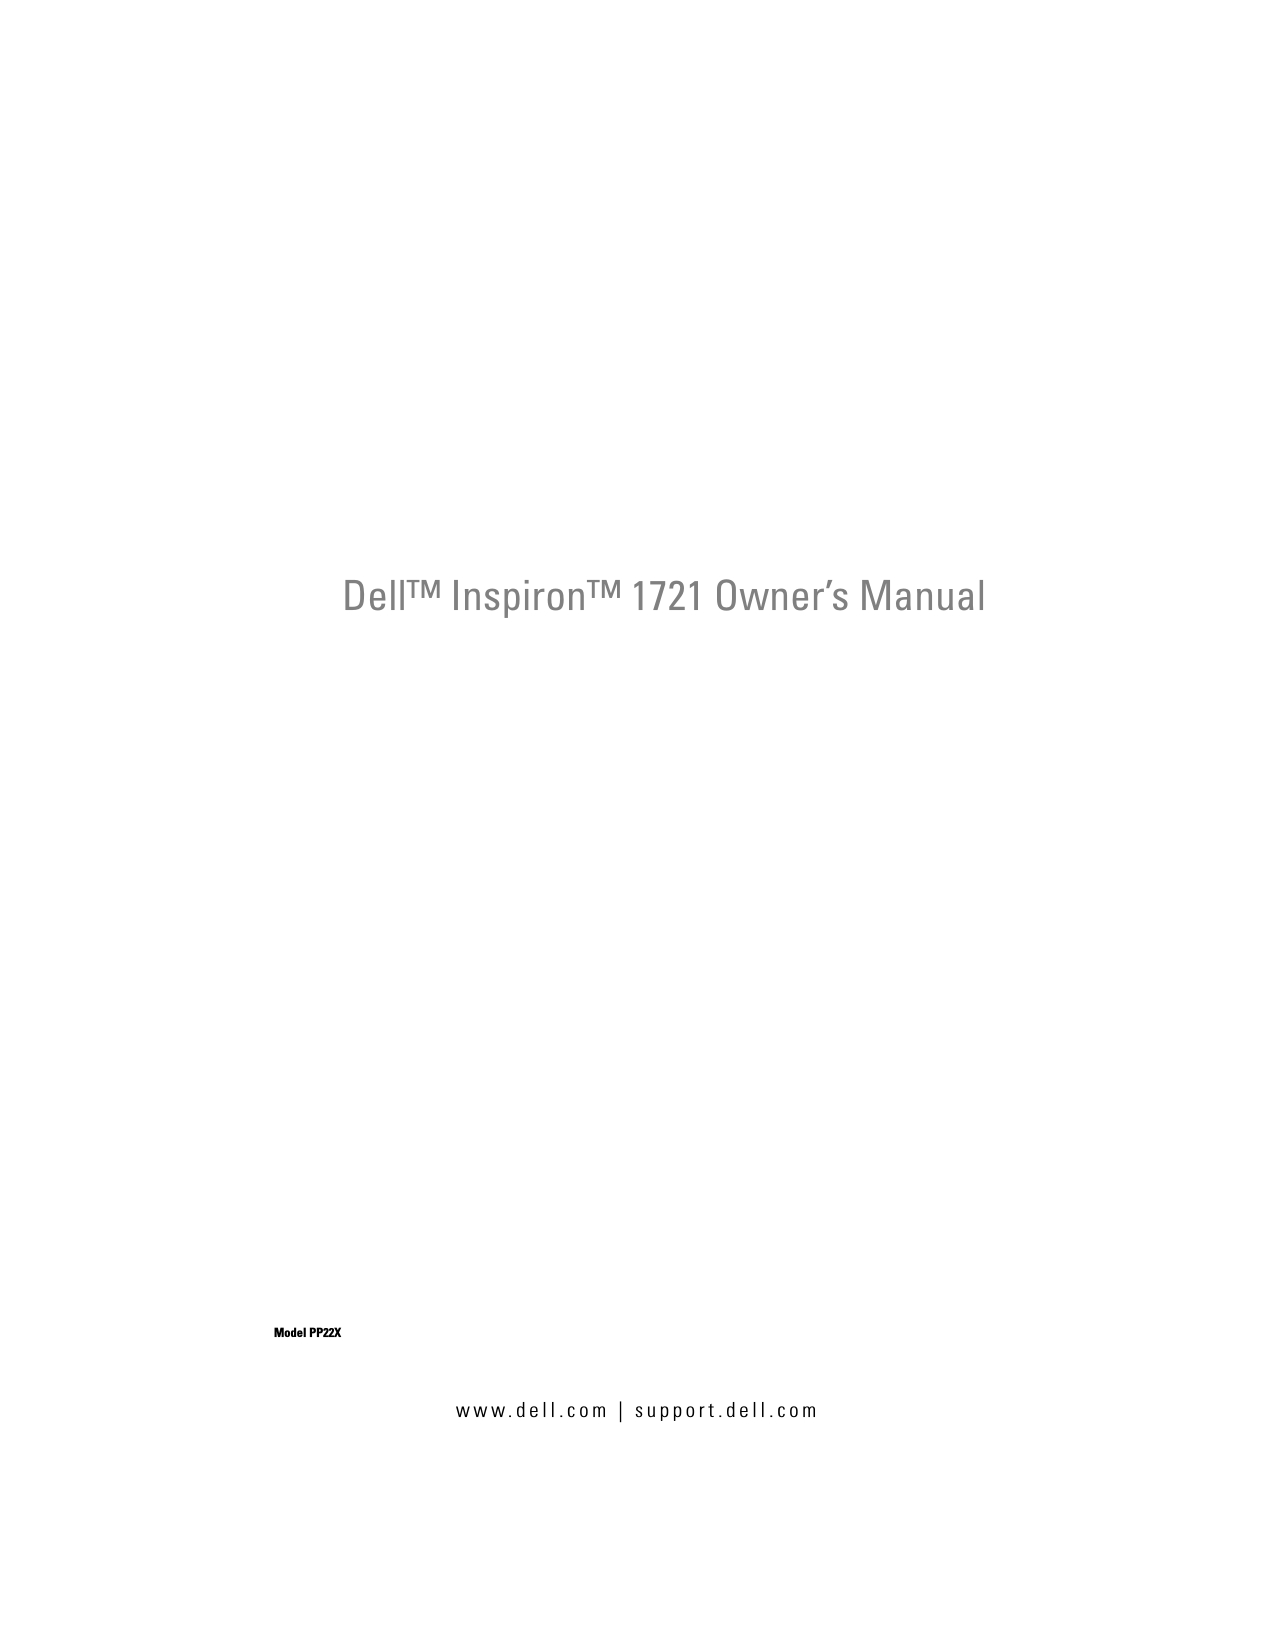 Dell Inspiron 1721 Owner's Manual